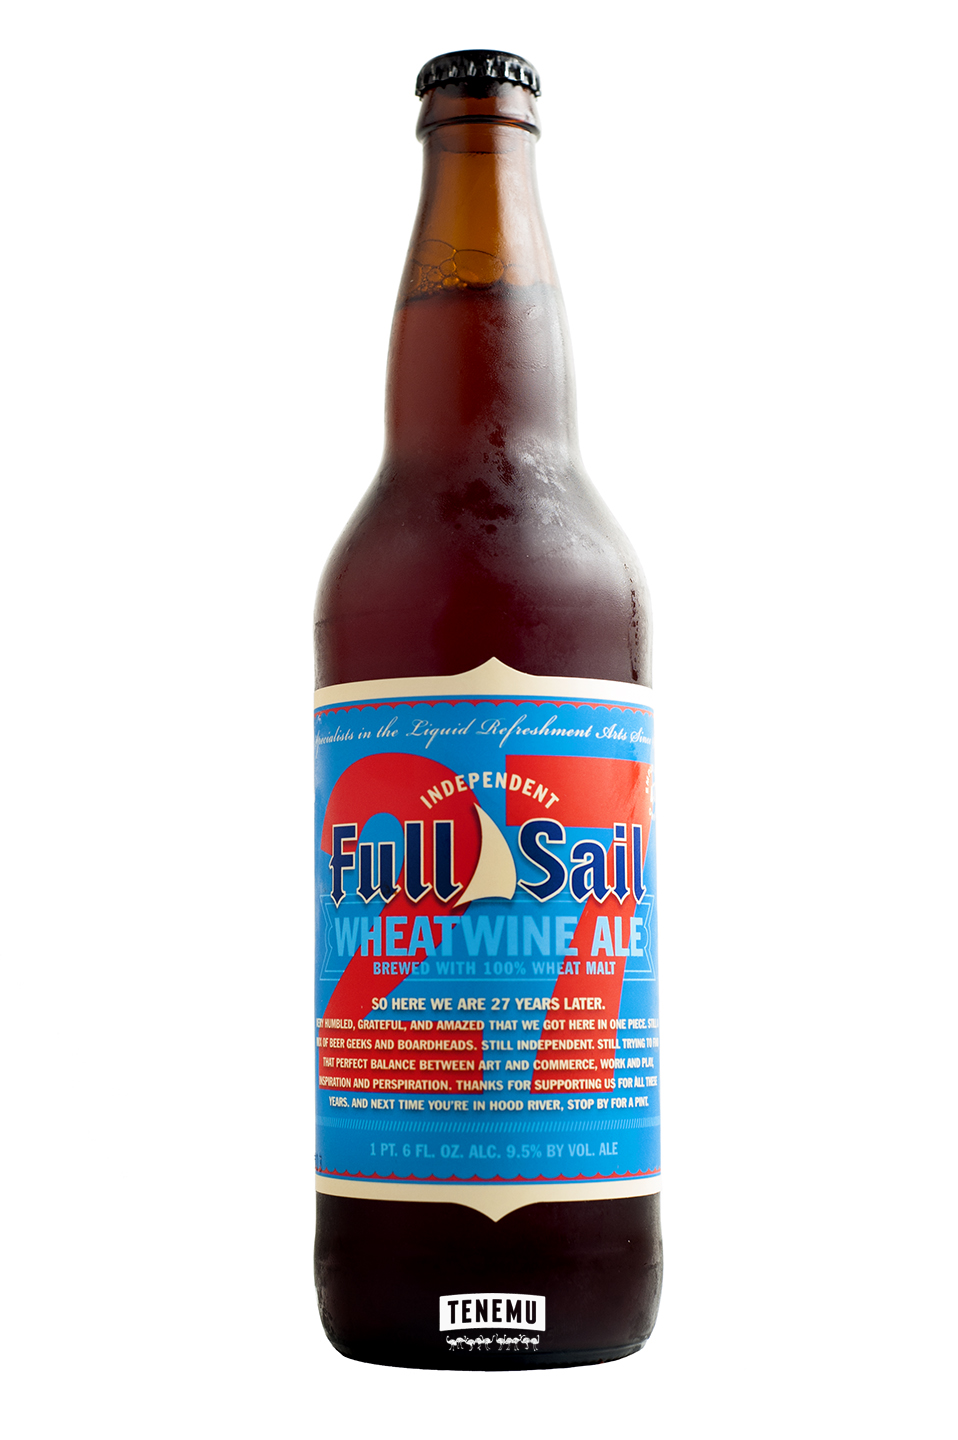 Full Sail 27th Anniversary Wheatwine Ale bottle